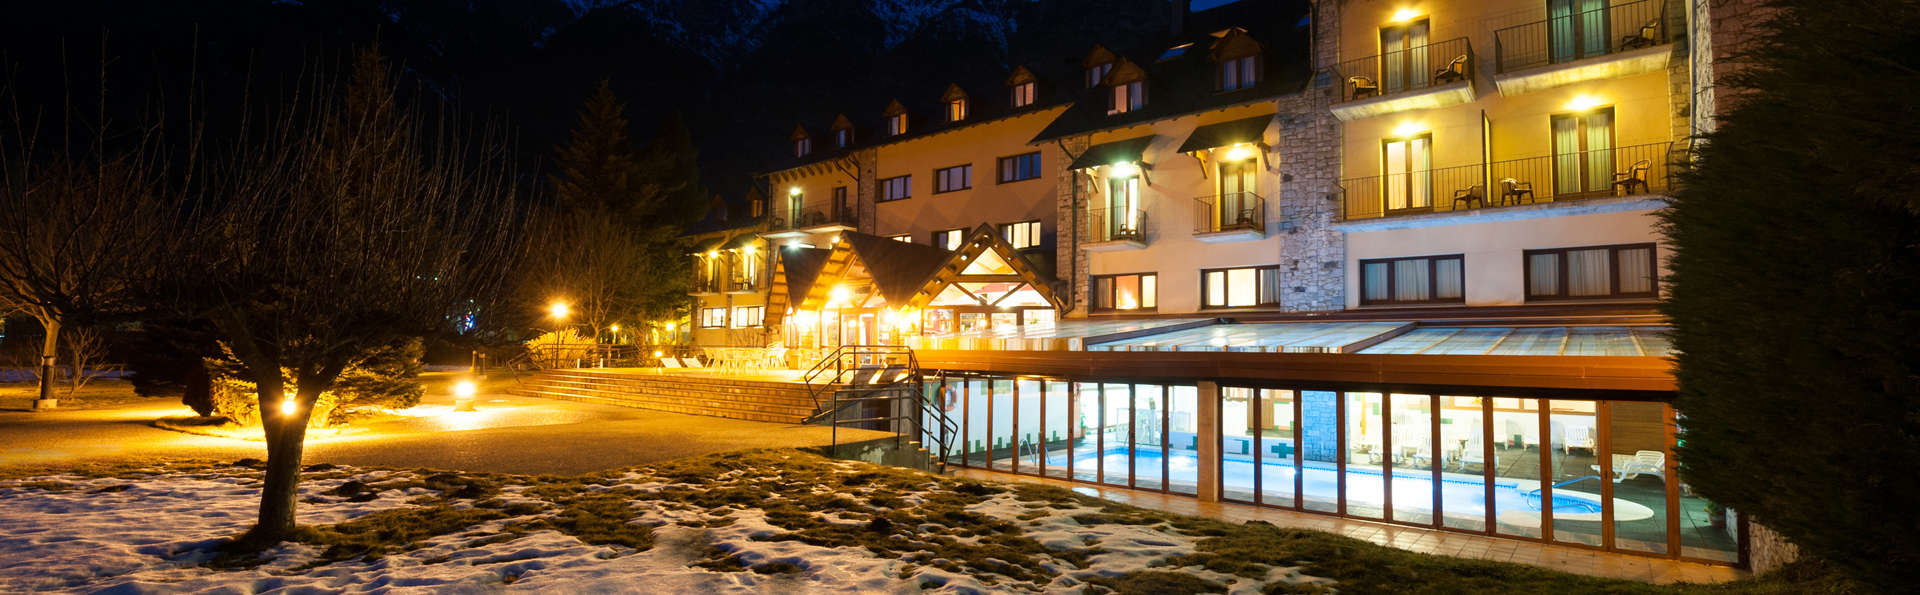 SOMMOS Hotel Benasque Spa - EDIT_NEW2_FRONT4.jpg